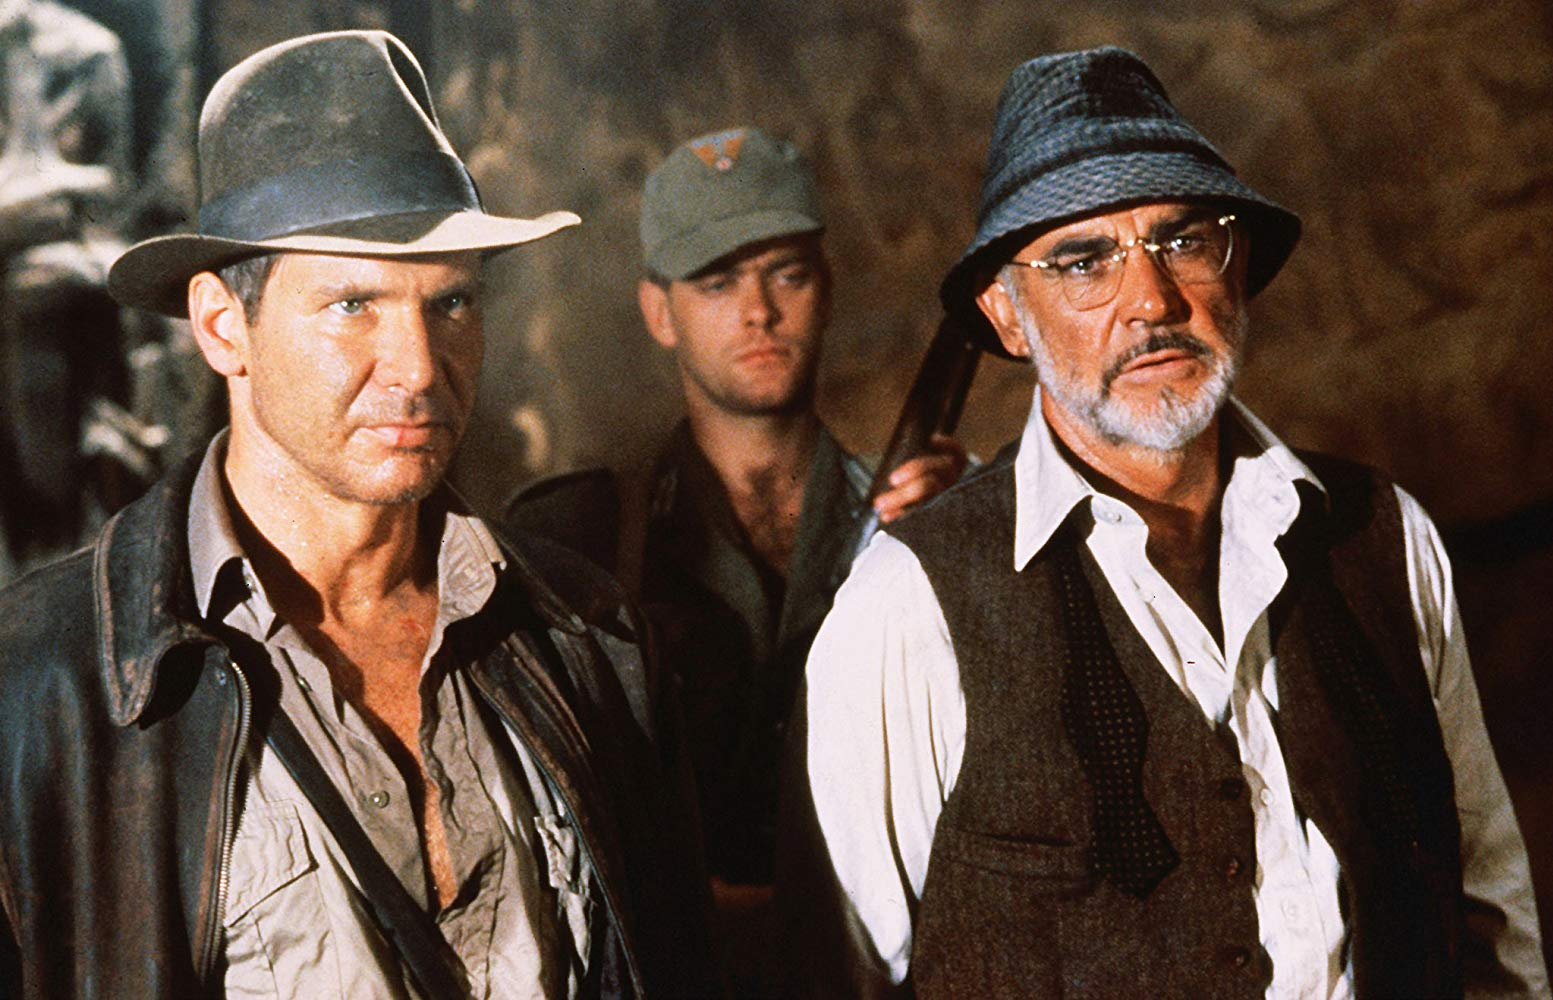 15 Things You Never Knew About 'Indiana Jones and the Last Crusade' on its 30th Anniversary